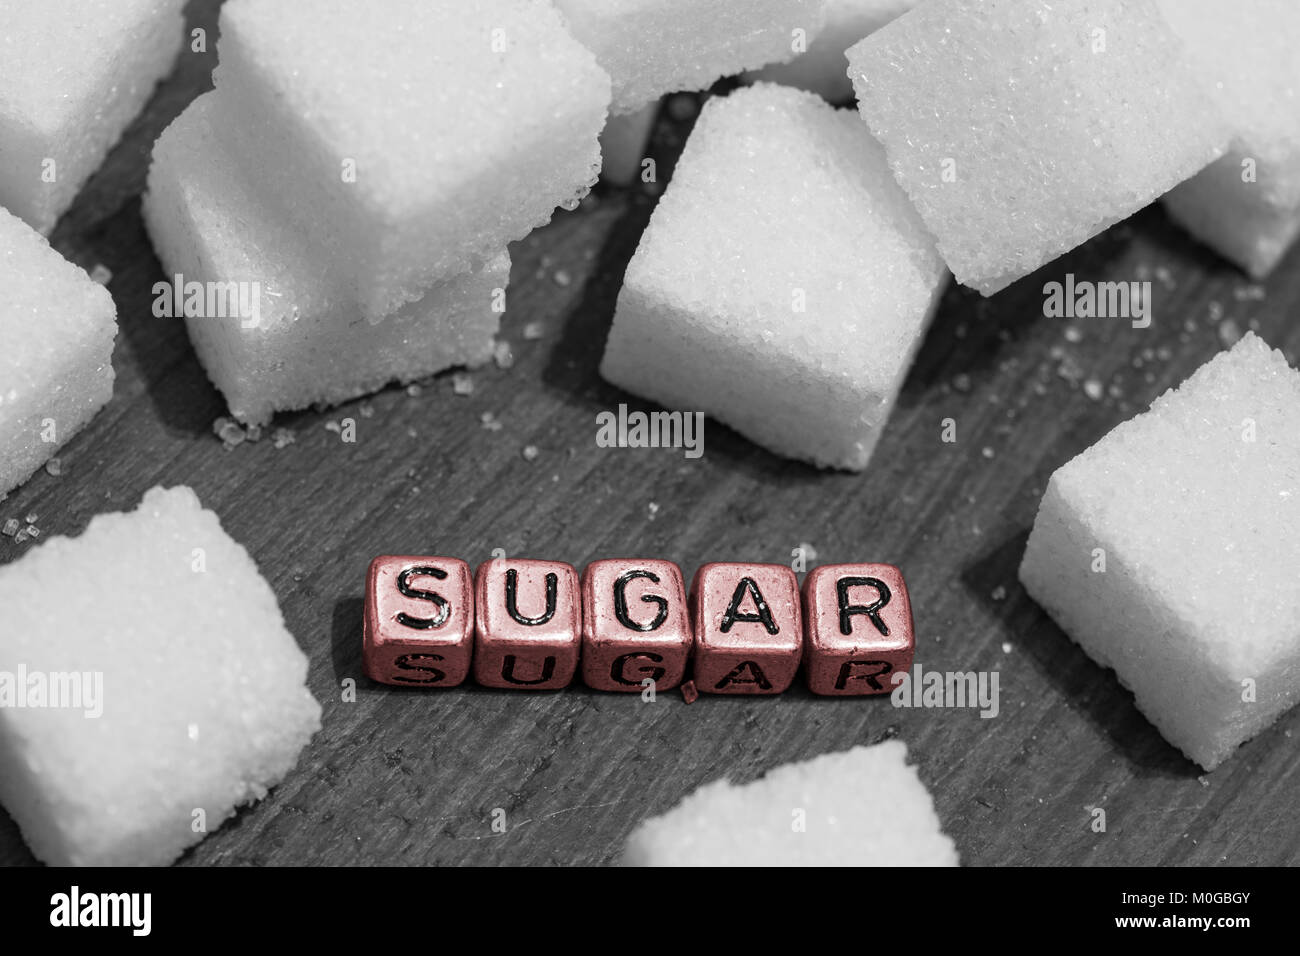 Sugar cubes with the word sugar on beads - Stock Image